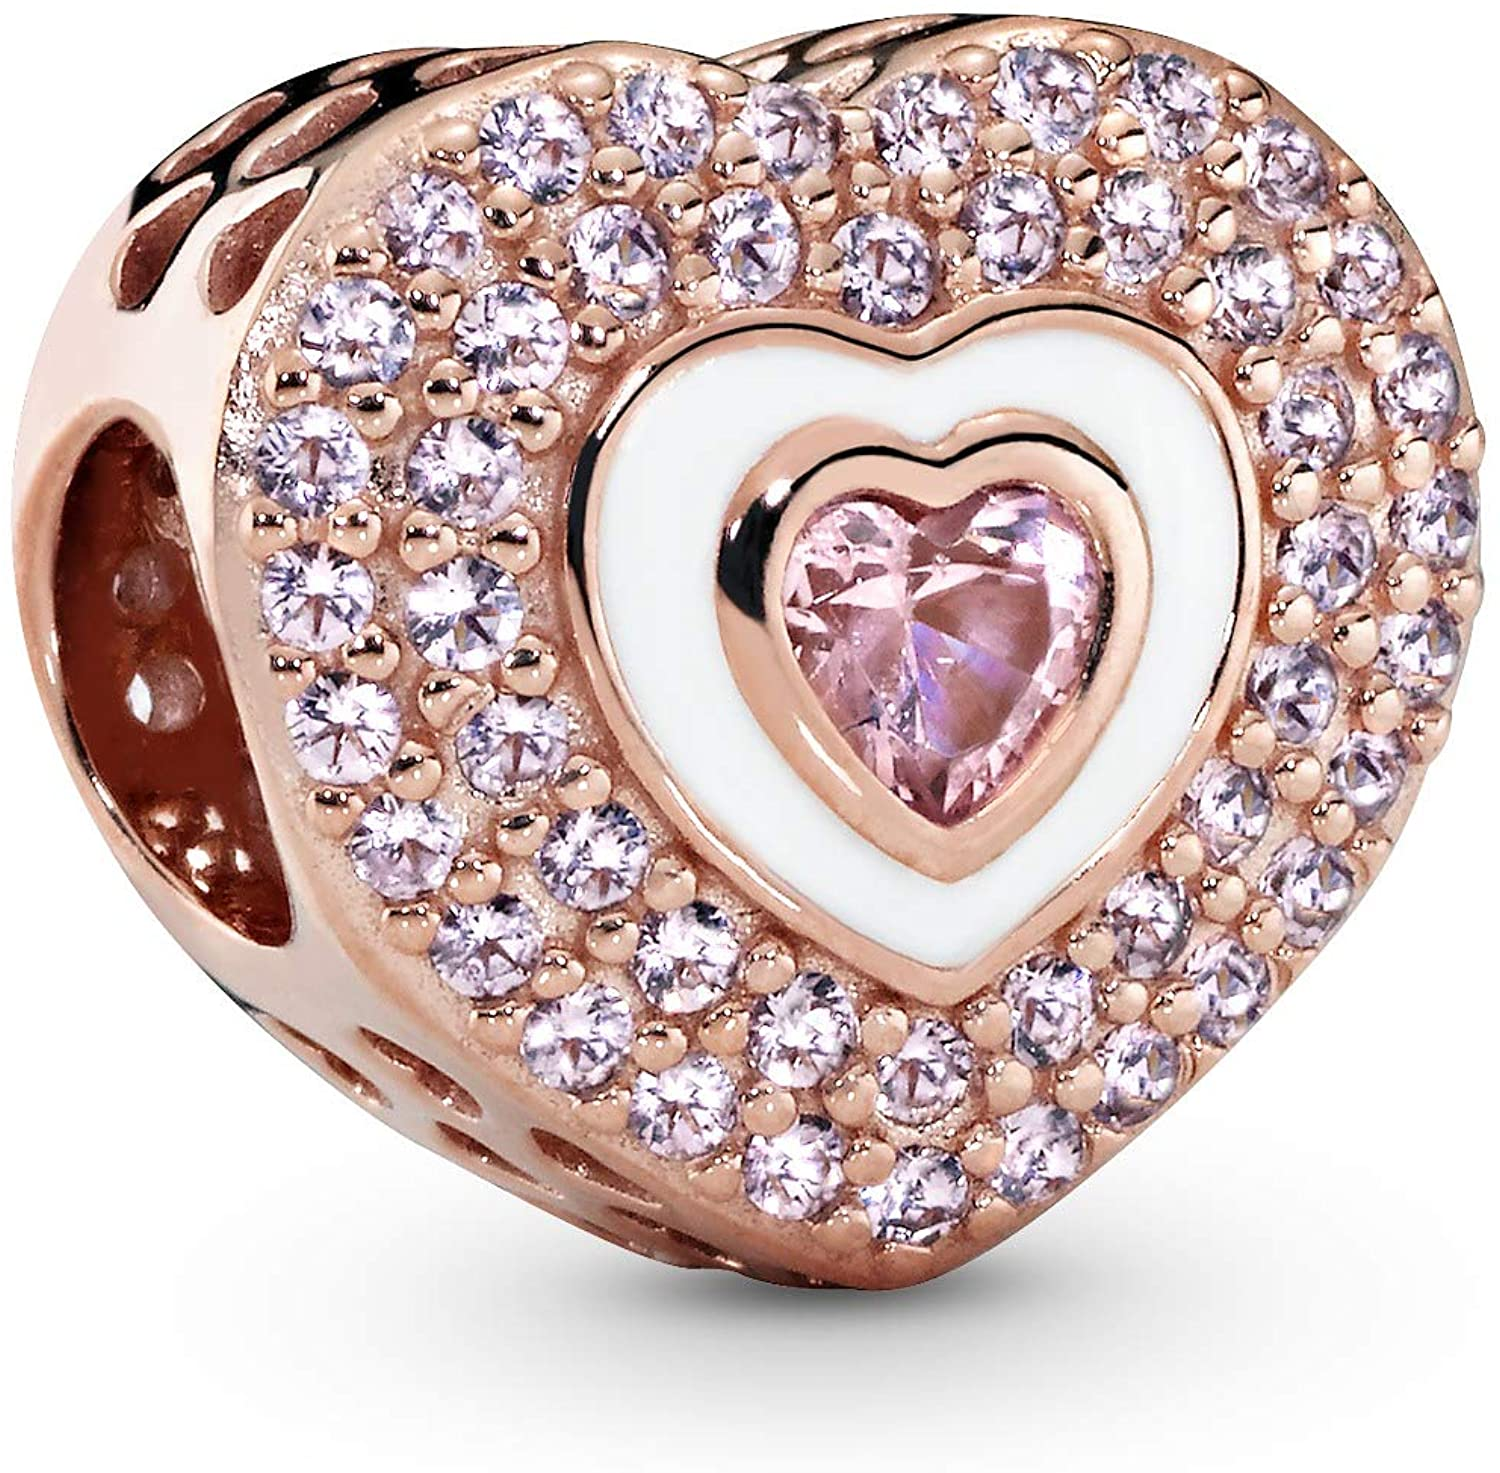 Pandora Jewelry Pink Pave Heart Crystals Charm in Pandora Rose